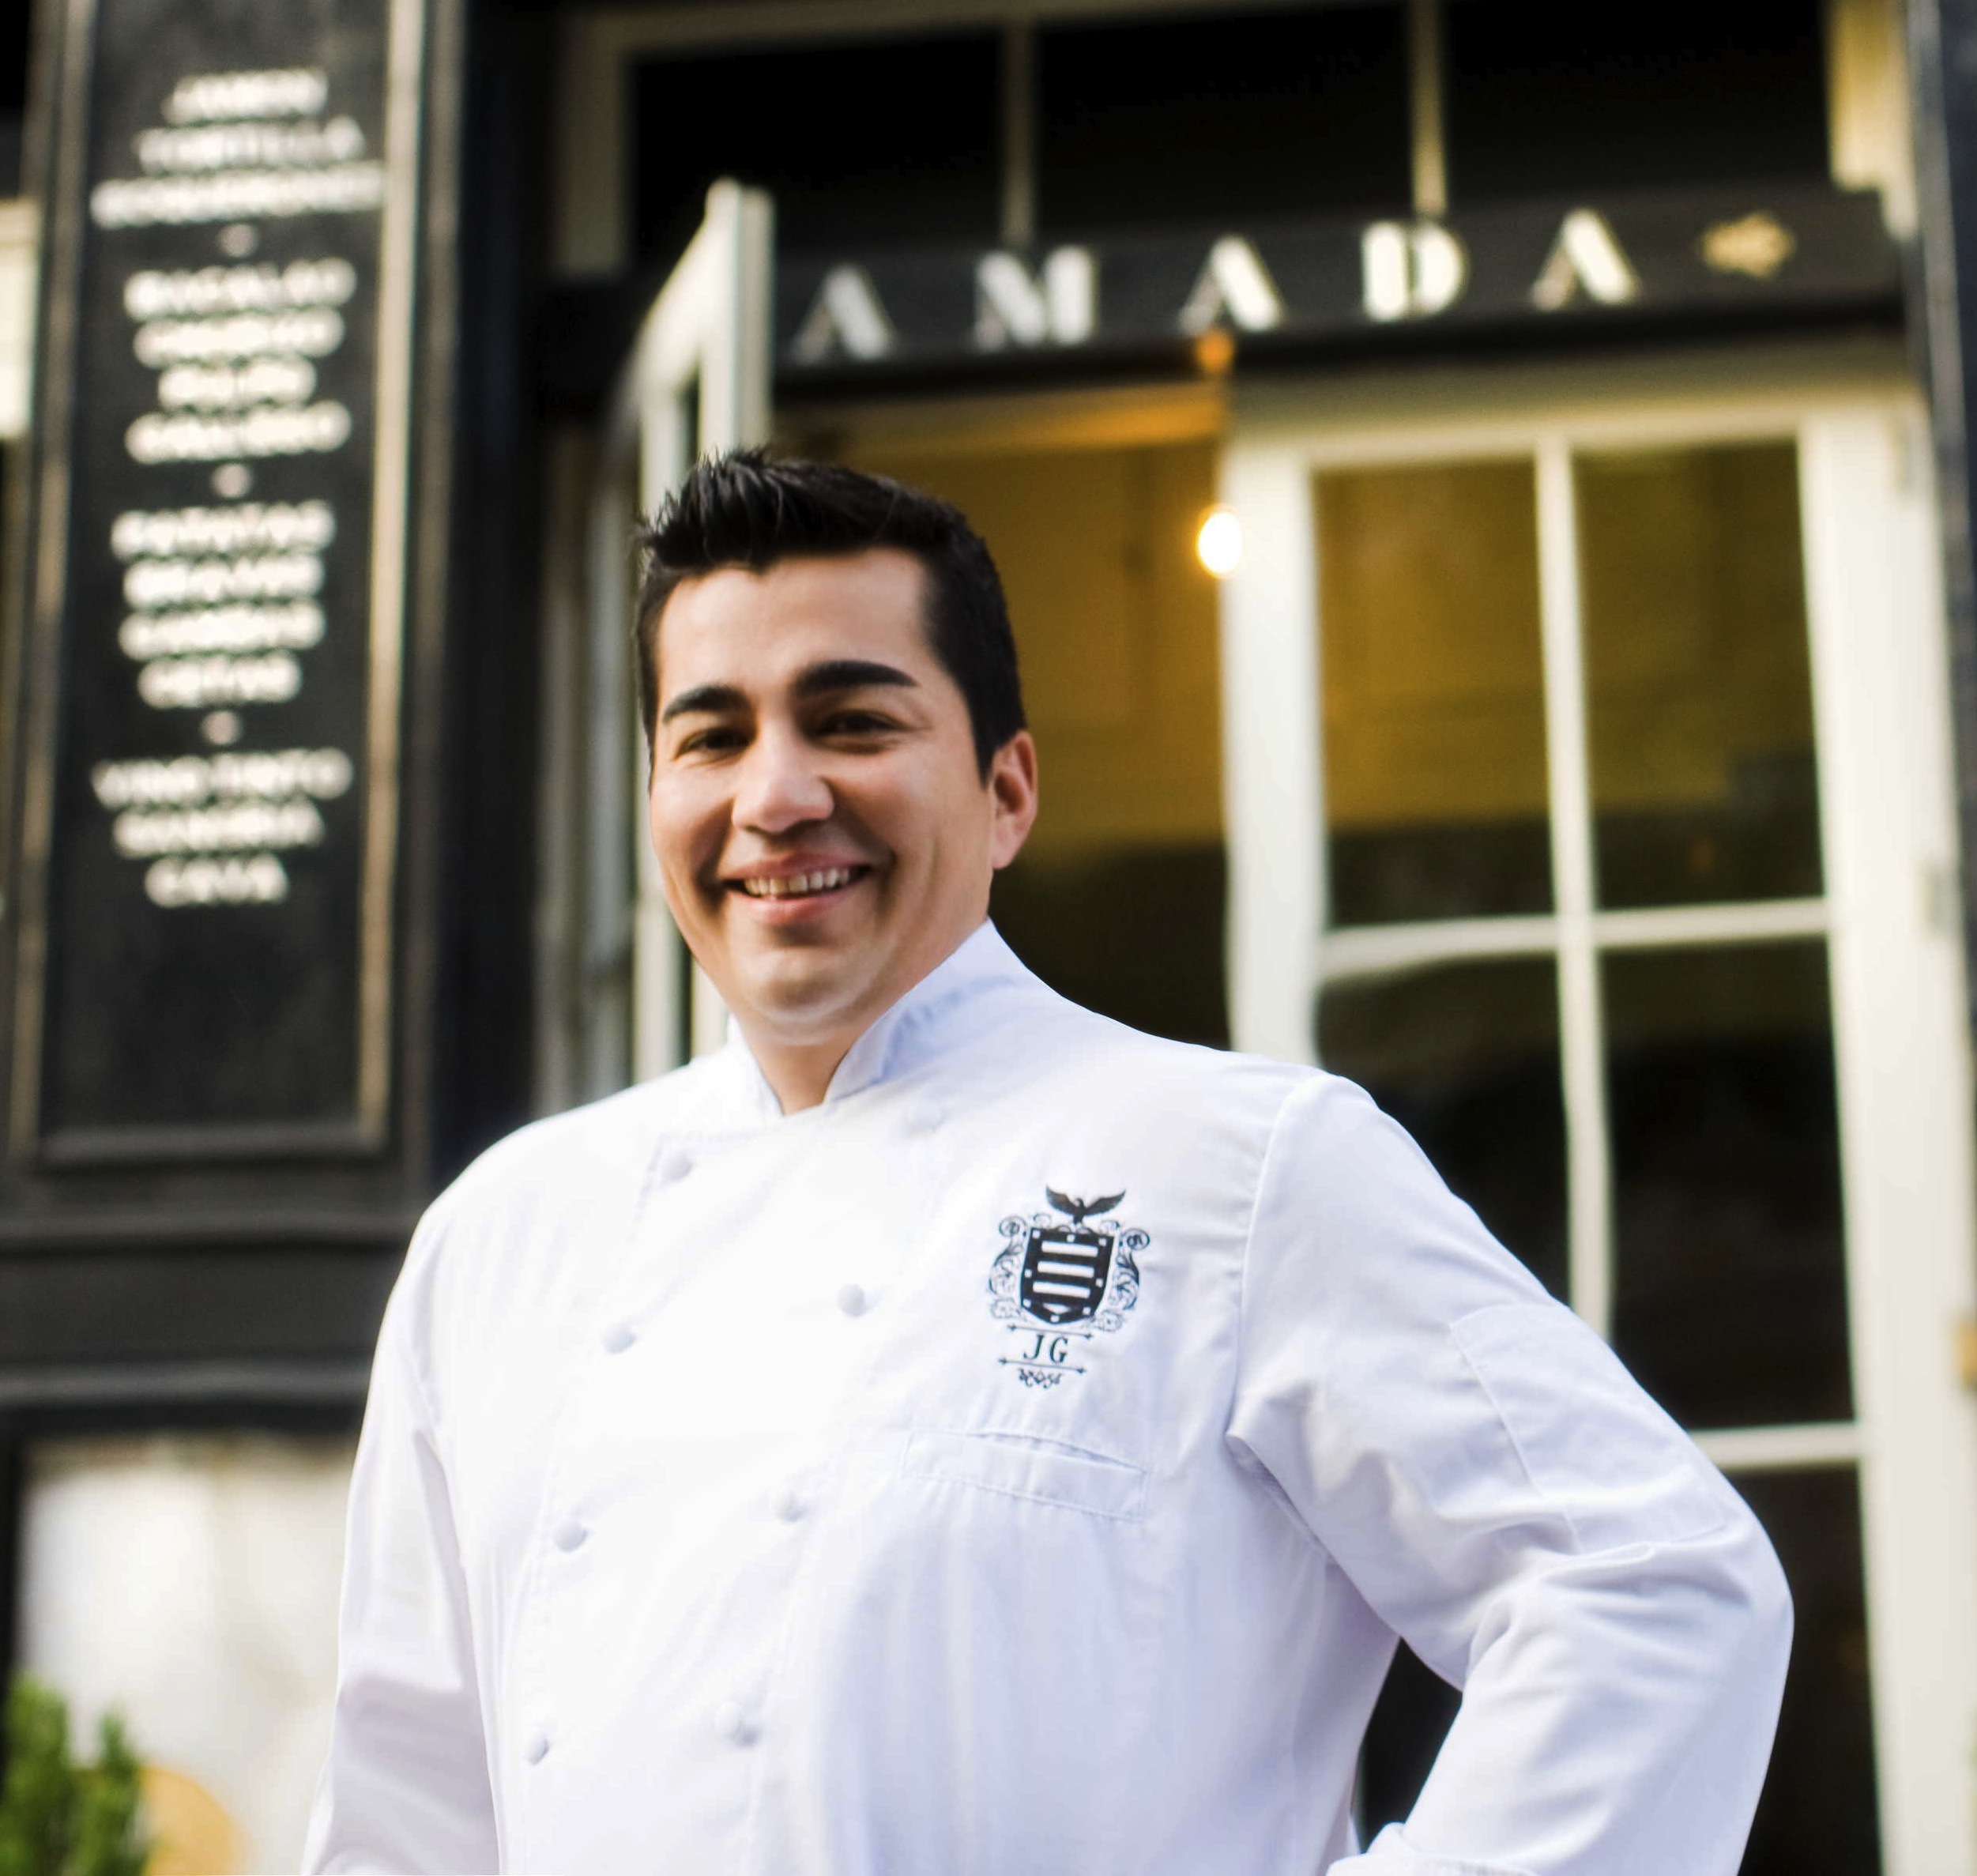 The Garces Group By Jose Garces Selects XtraCHEF For